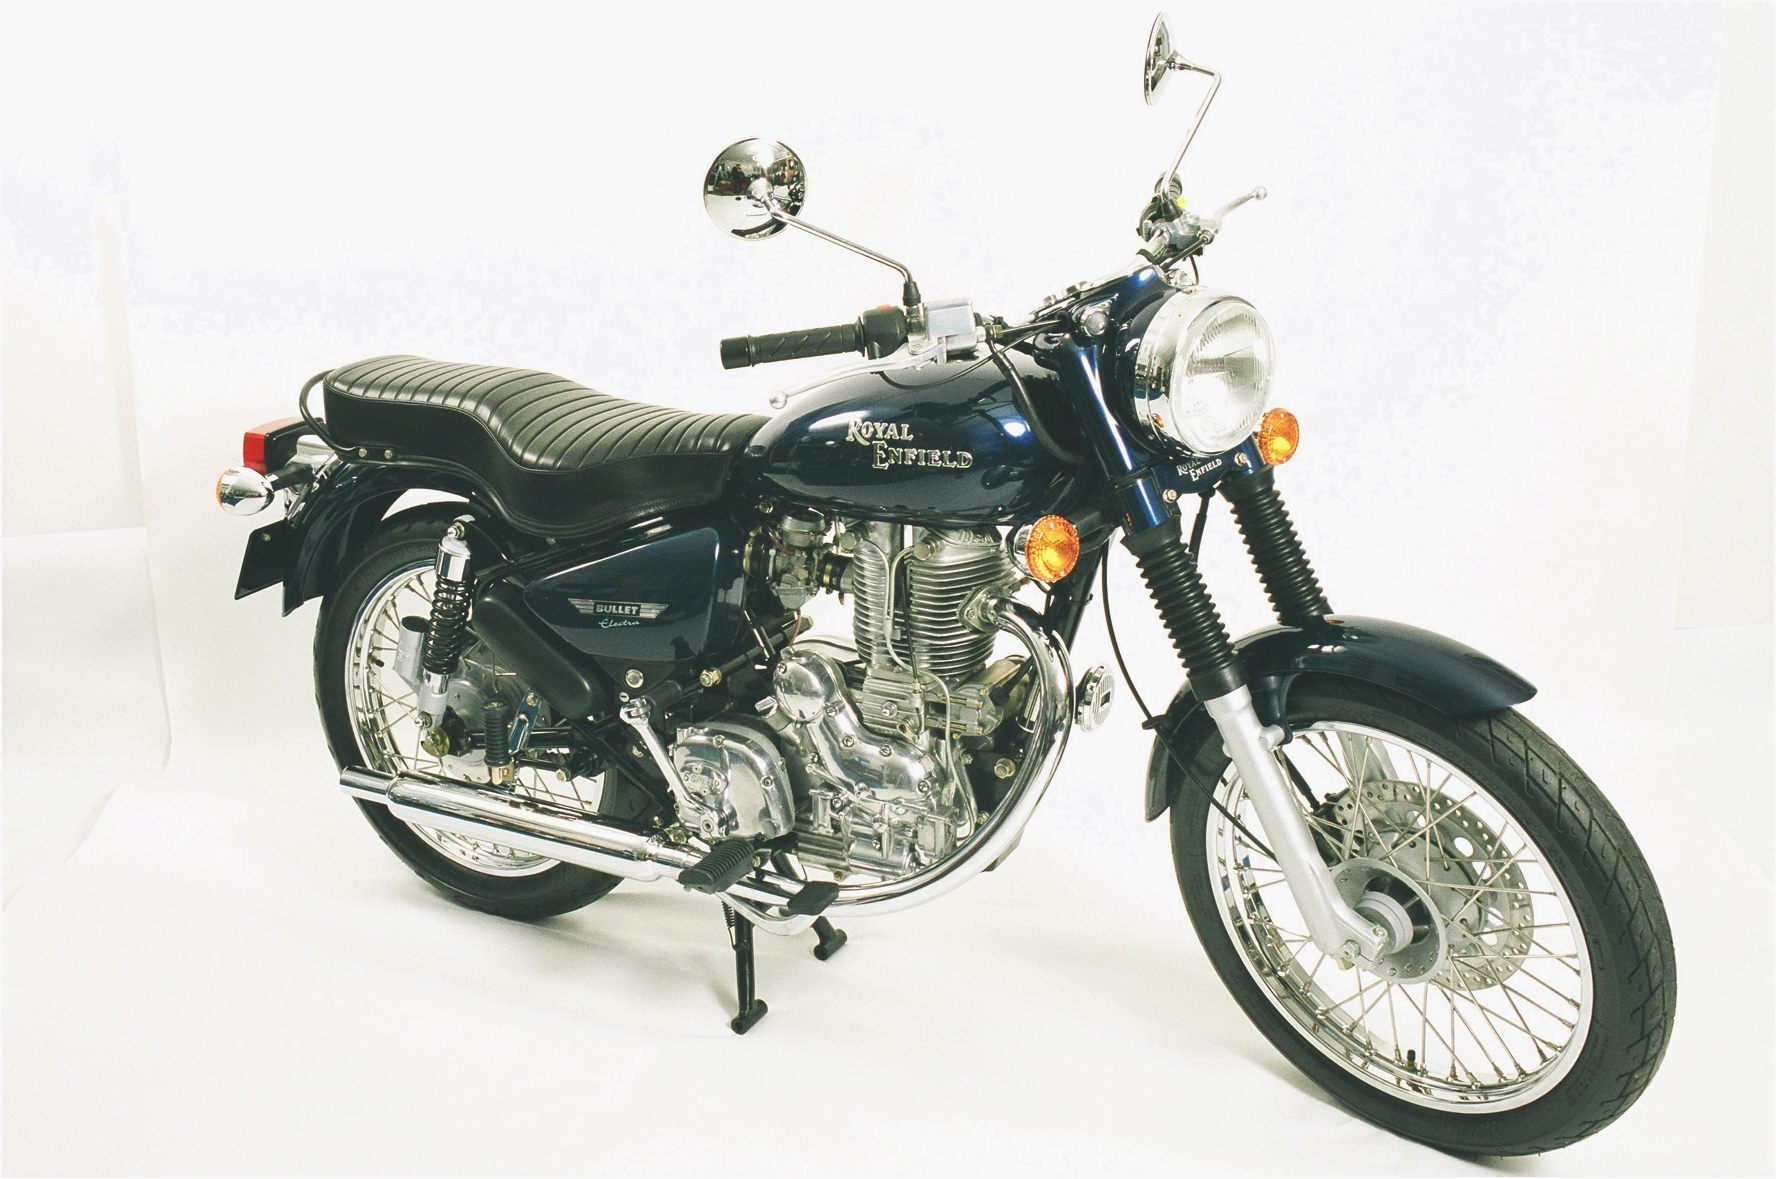 Royal Enfield Bullet 500 ES Deluxe 2005 images #123407